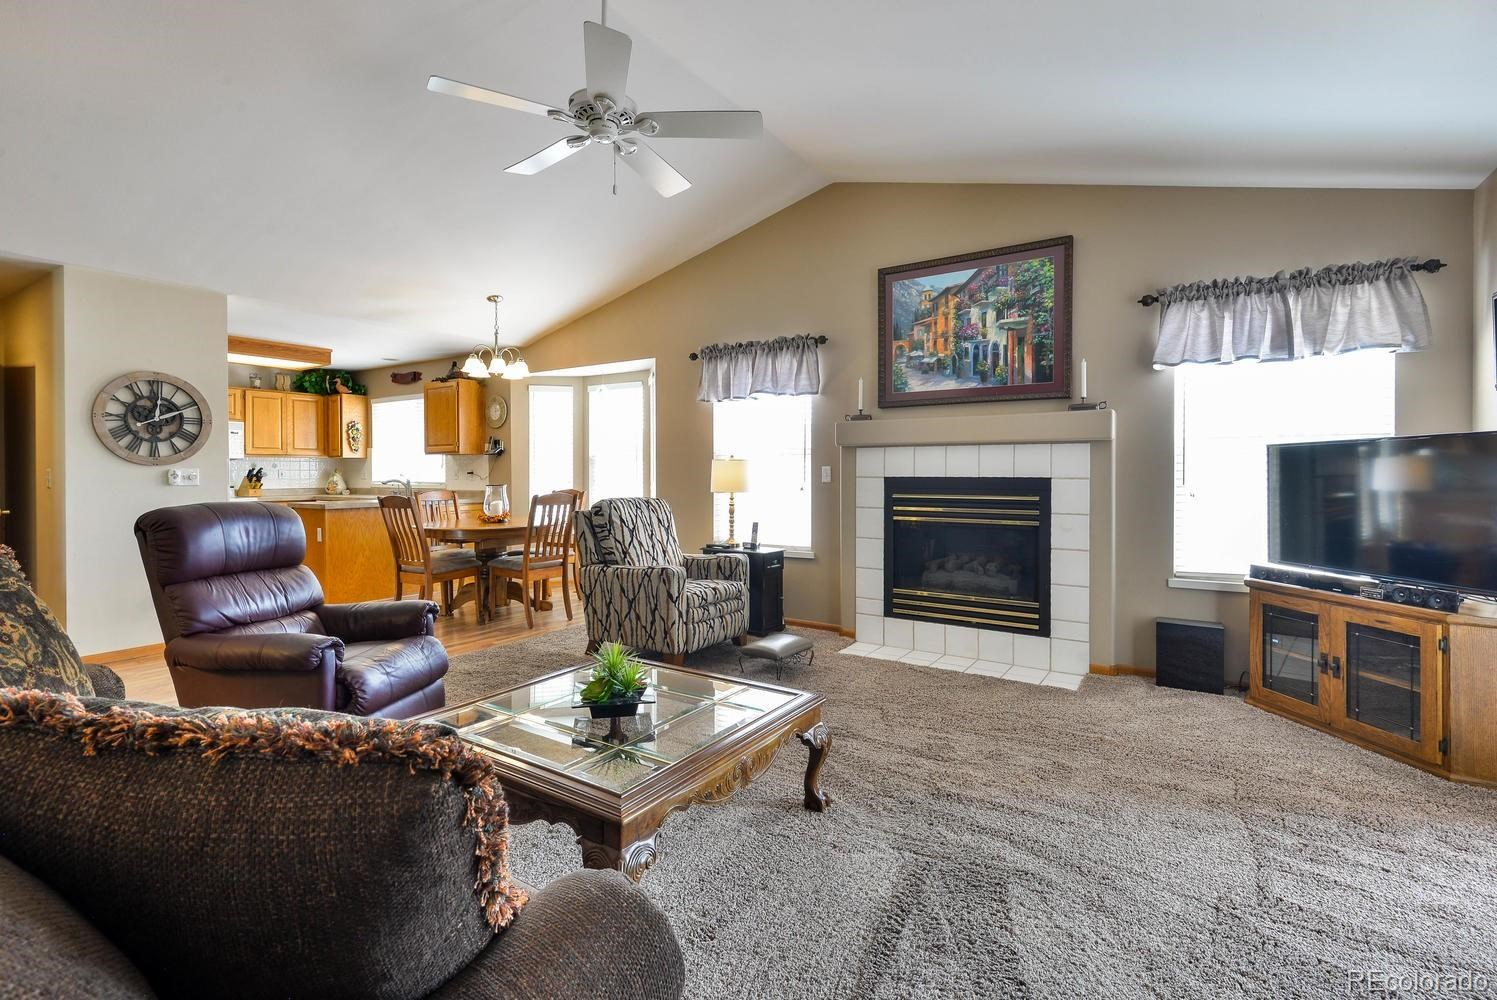 MLS# 5717707 - 2 - 3037 Antelope Road, Fort Collins, CO 80525